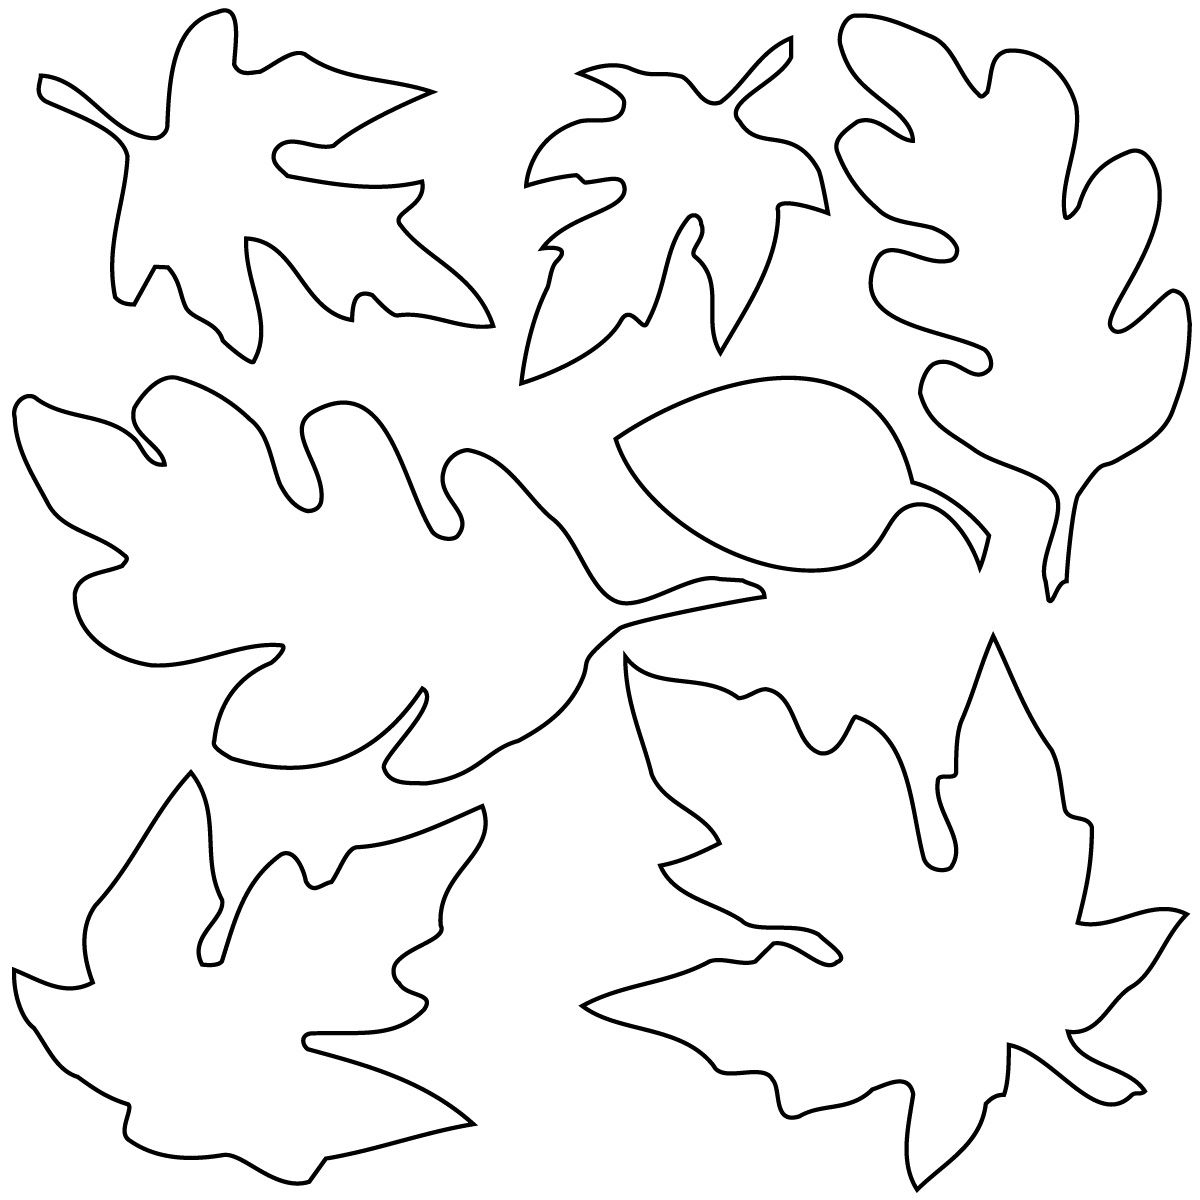 Related Leaf Coloring Pages Item-13080, Leaf Coloring Pages Fall - Free Printable Fall Leaves Coloring Pages